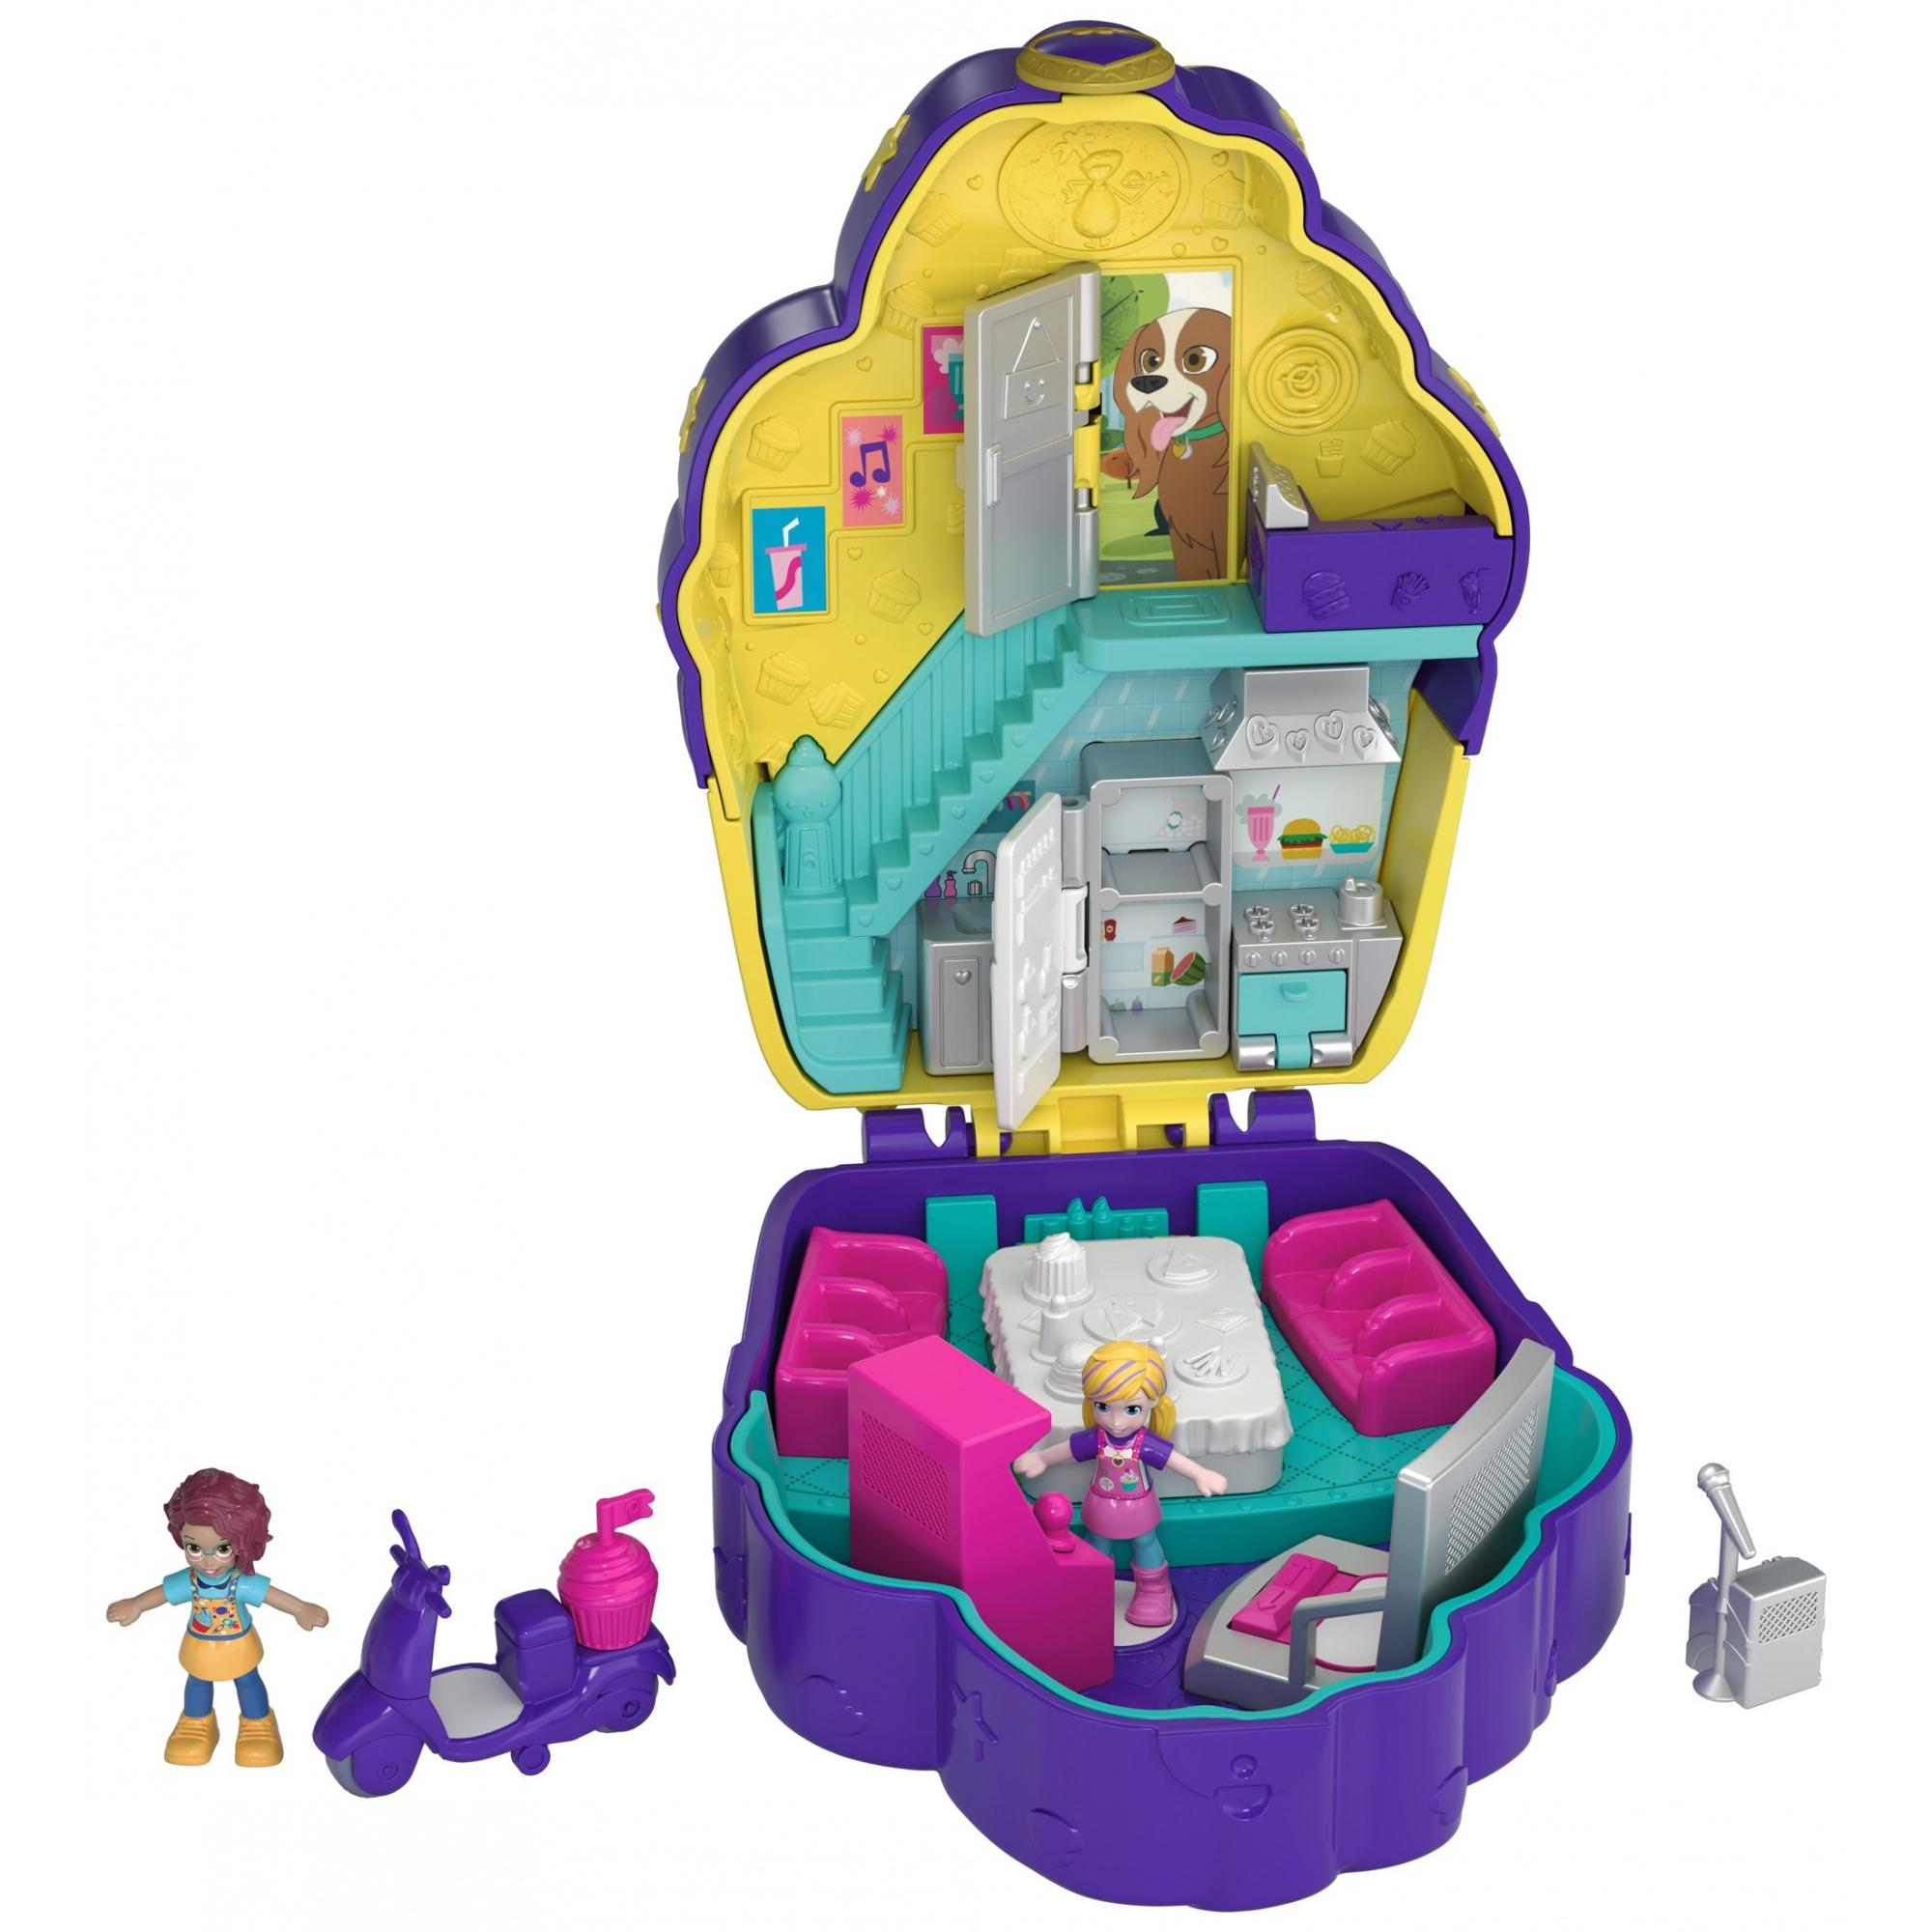 Polly Pocket Pocket Sweet Treat Cupcake Compact